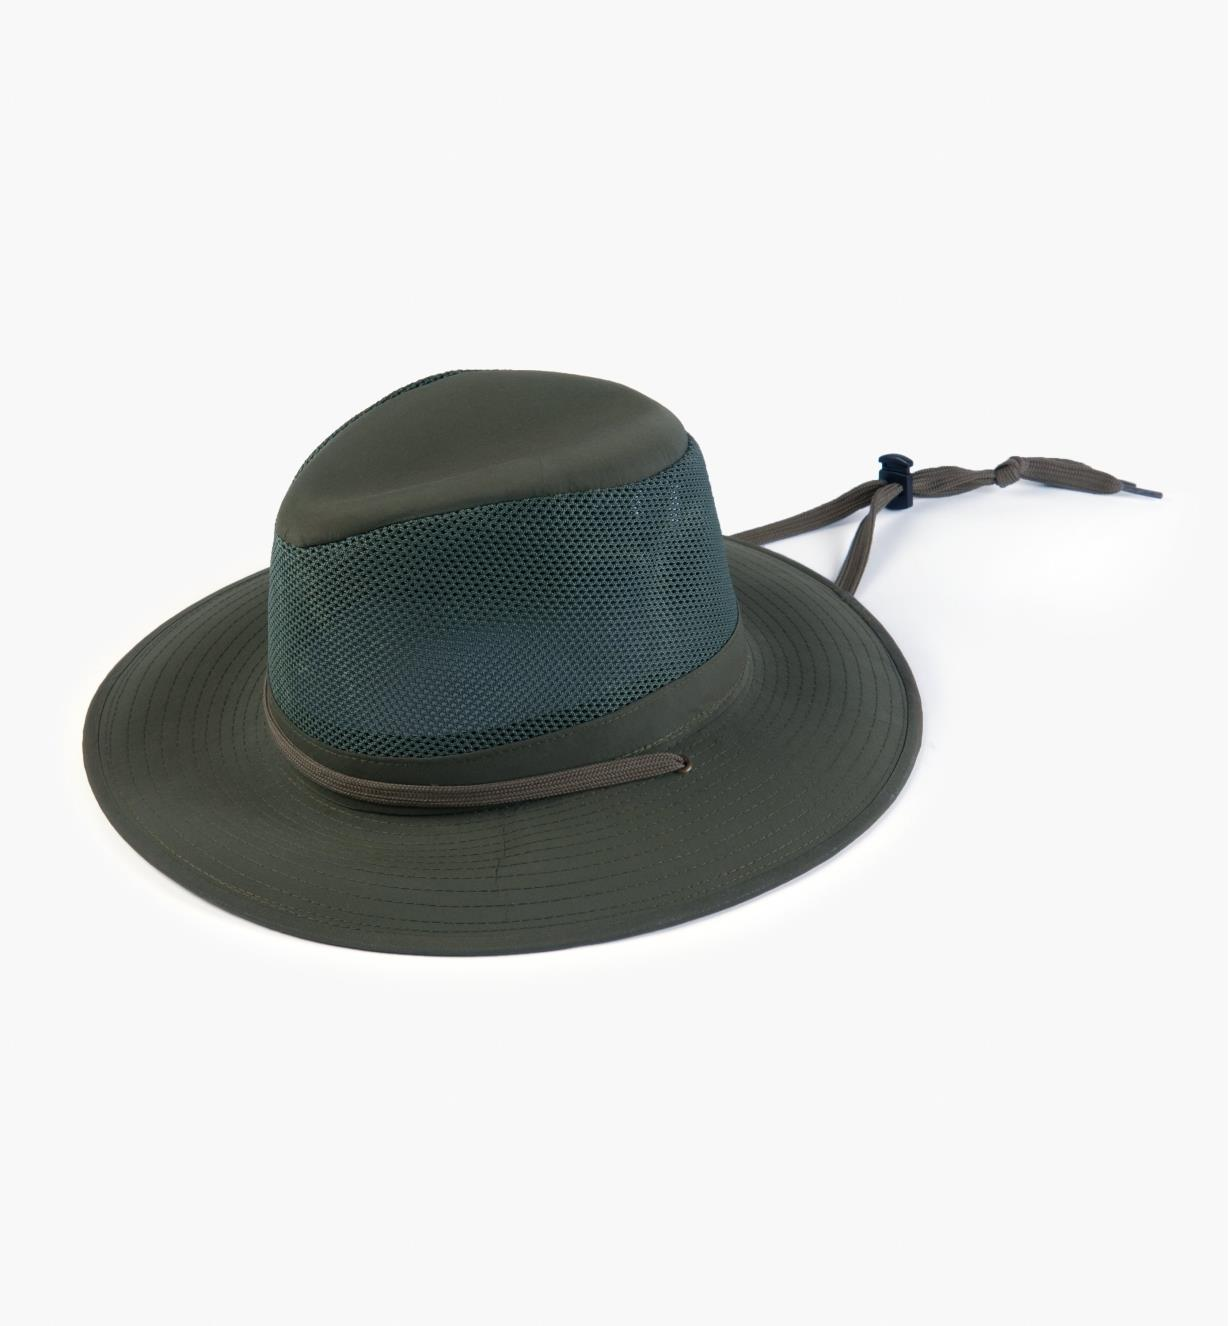 HL543 - Green Breezer Hat, XL